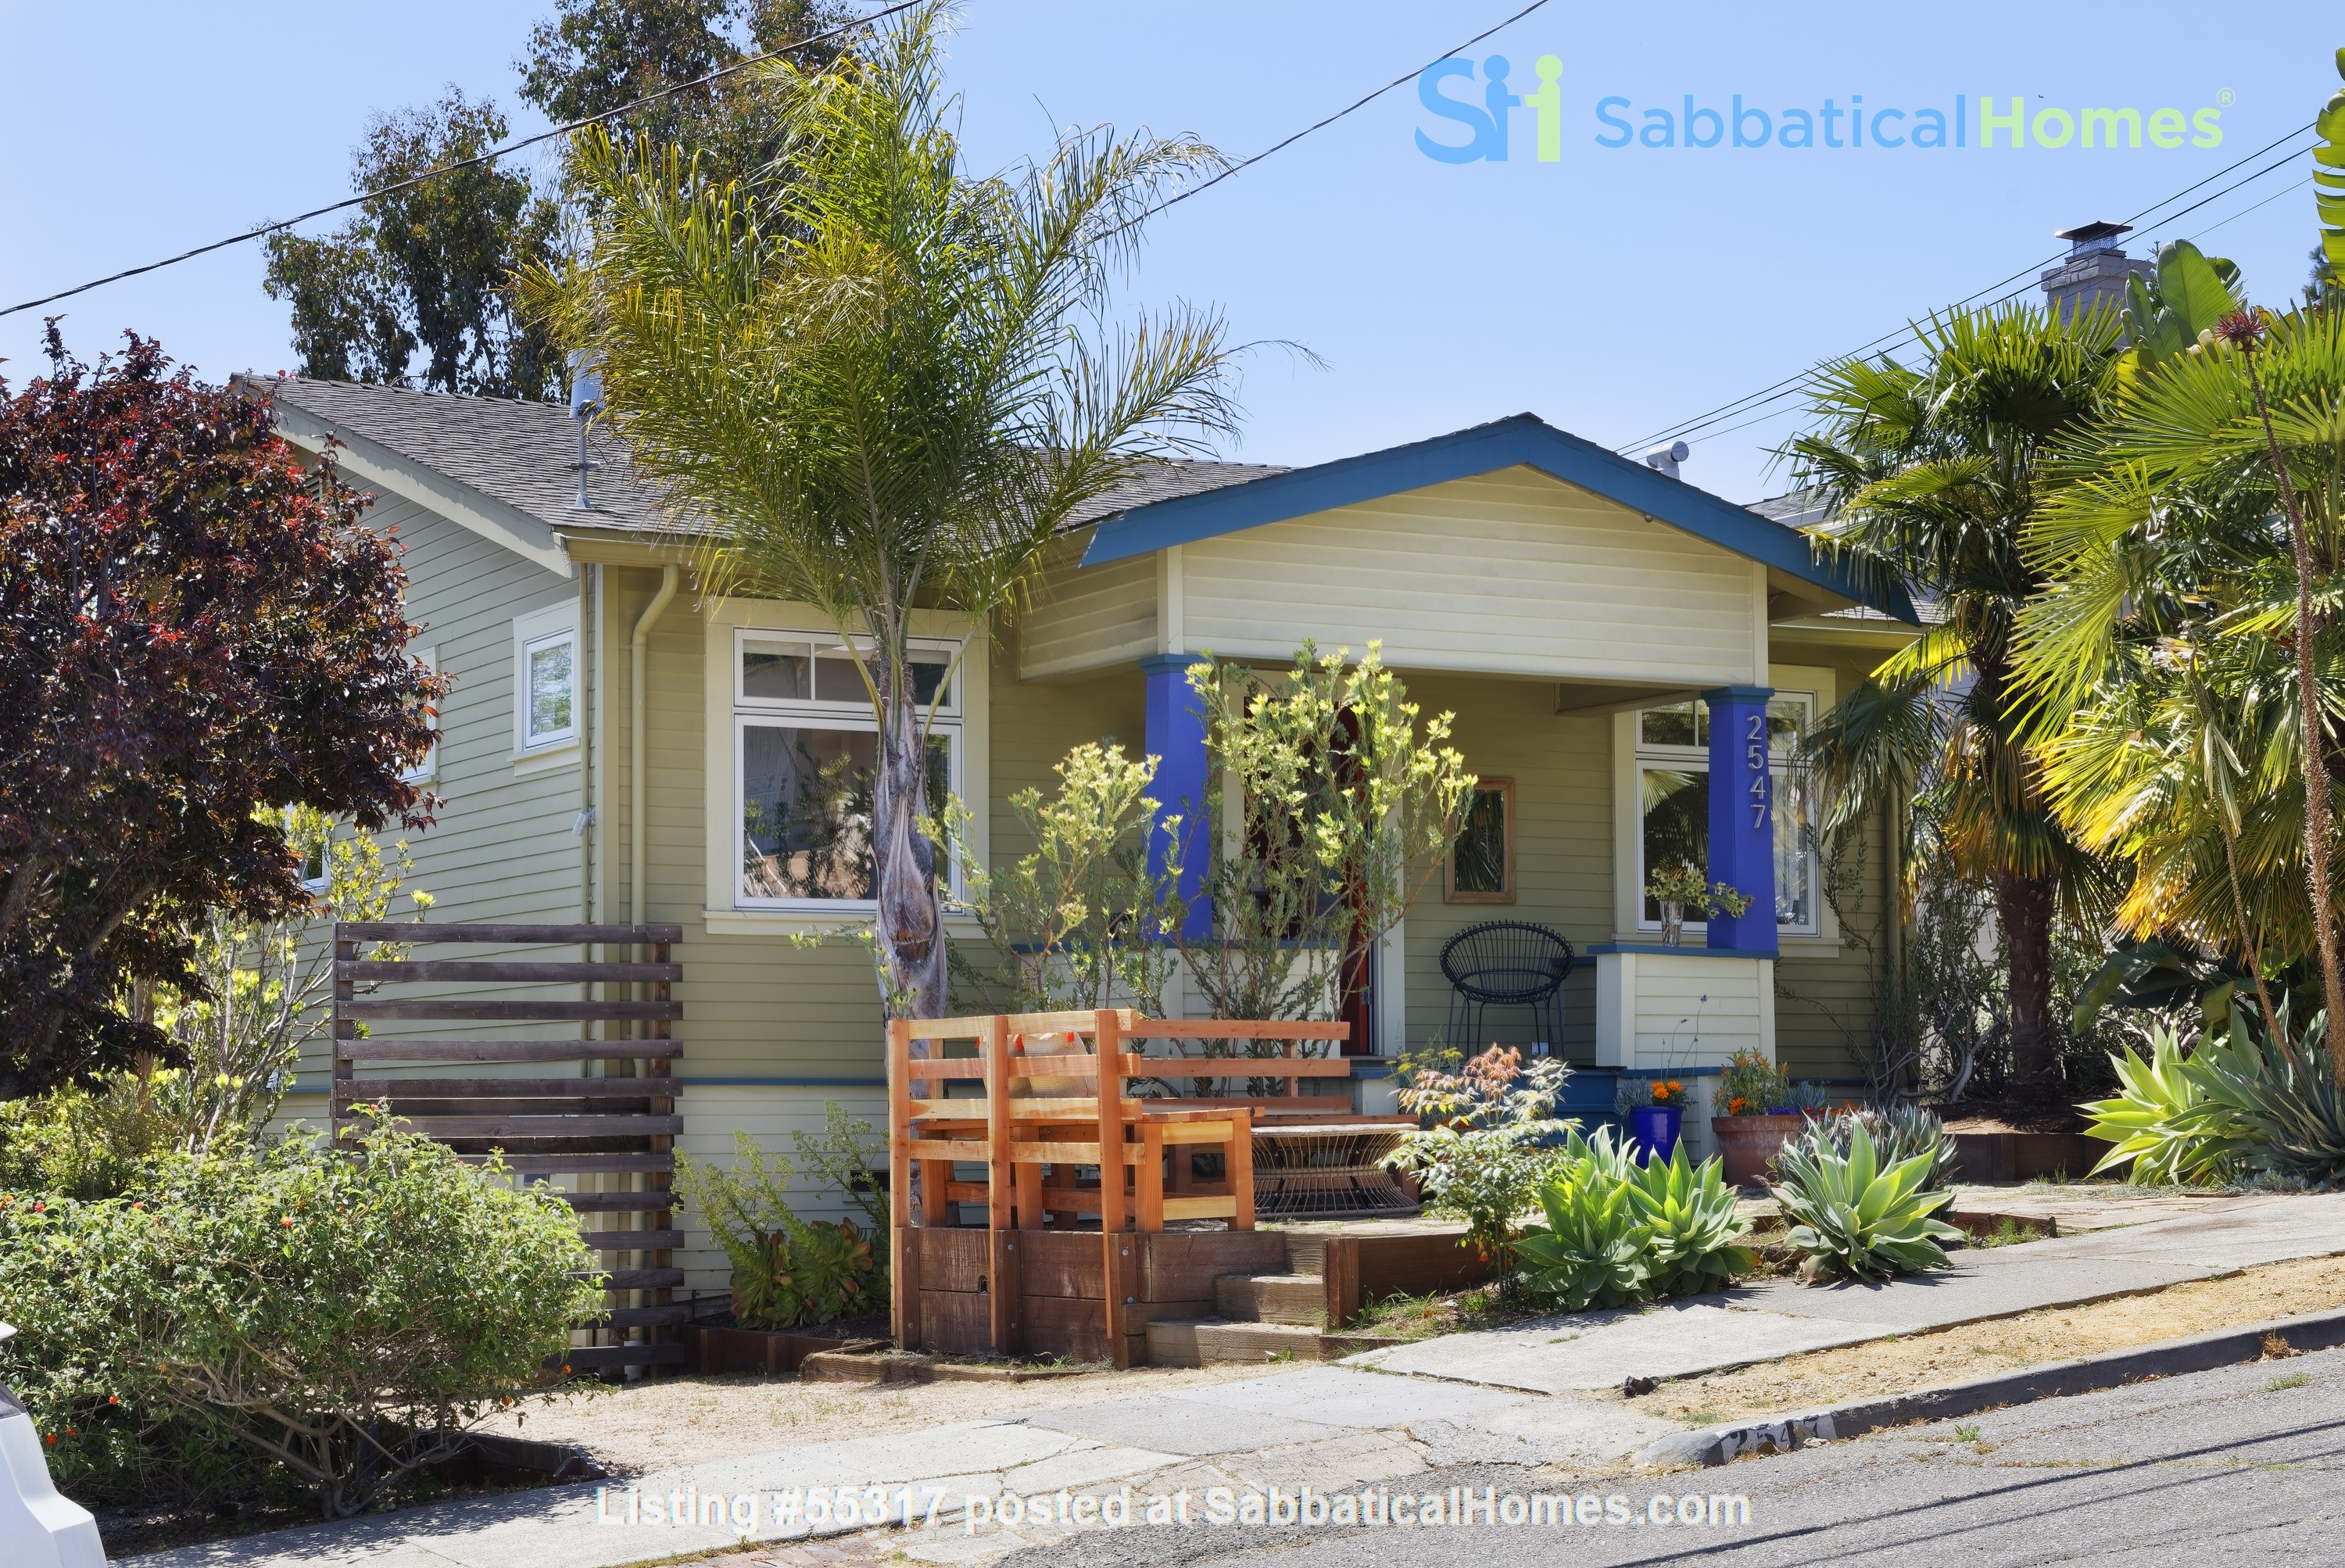 TROPICAL MODERN BUNGALOW- Oakland house near shops and hiking trails Home Rental in Oakland, California, United States 0